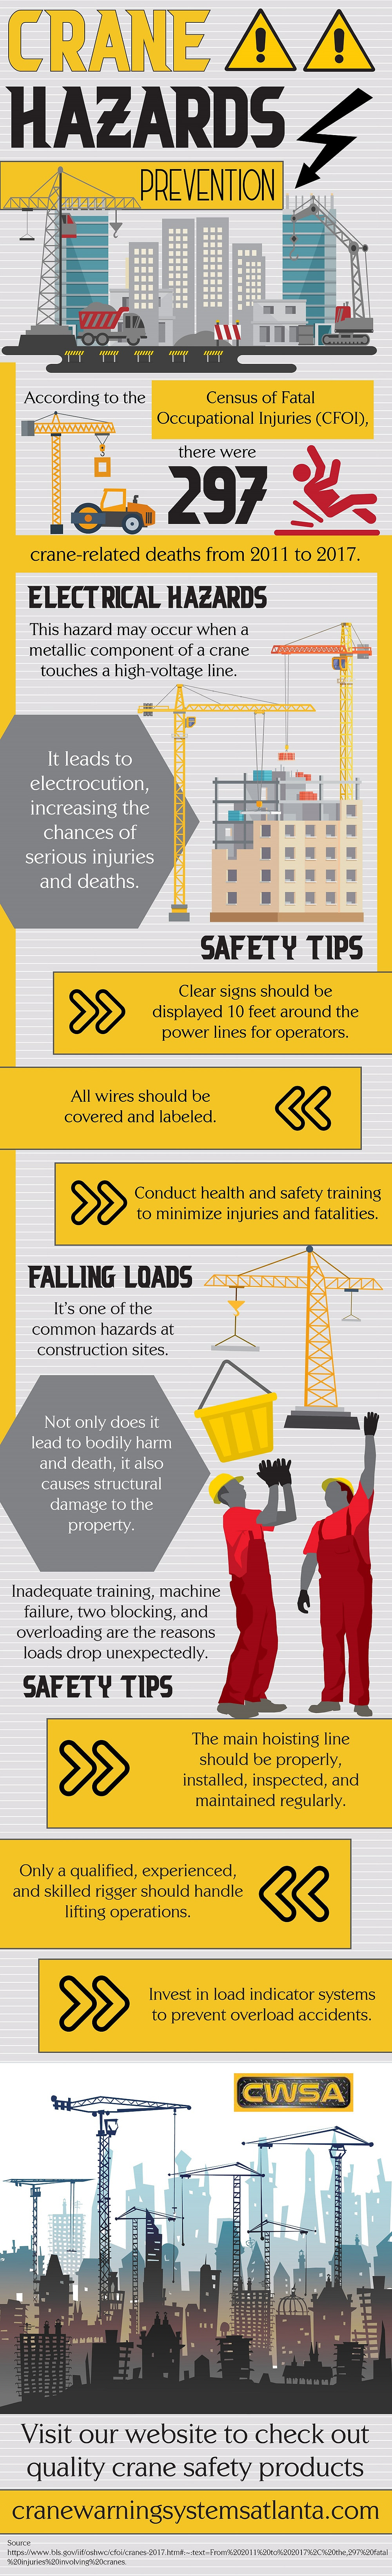 Crane Hazards Prevention